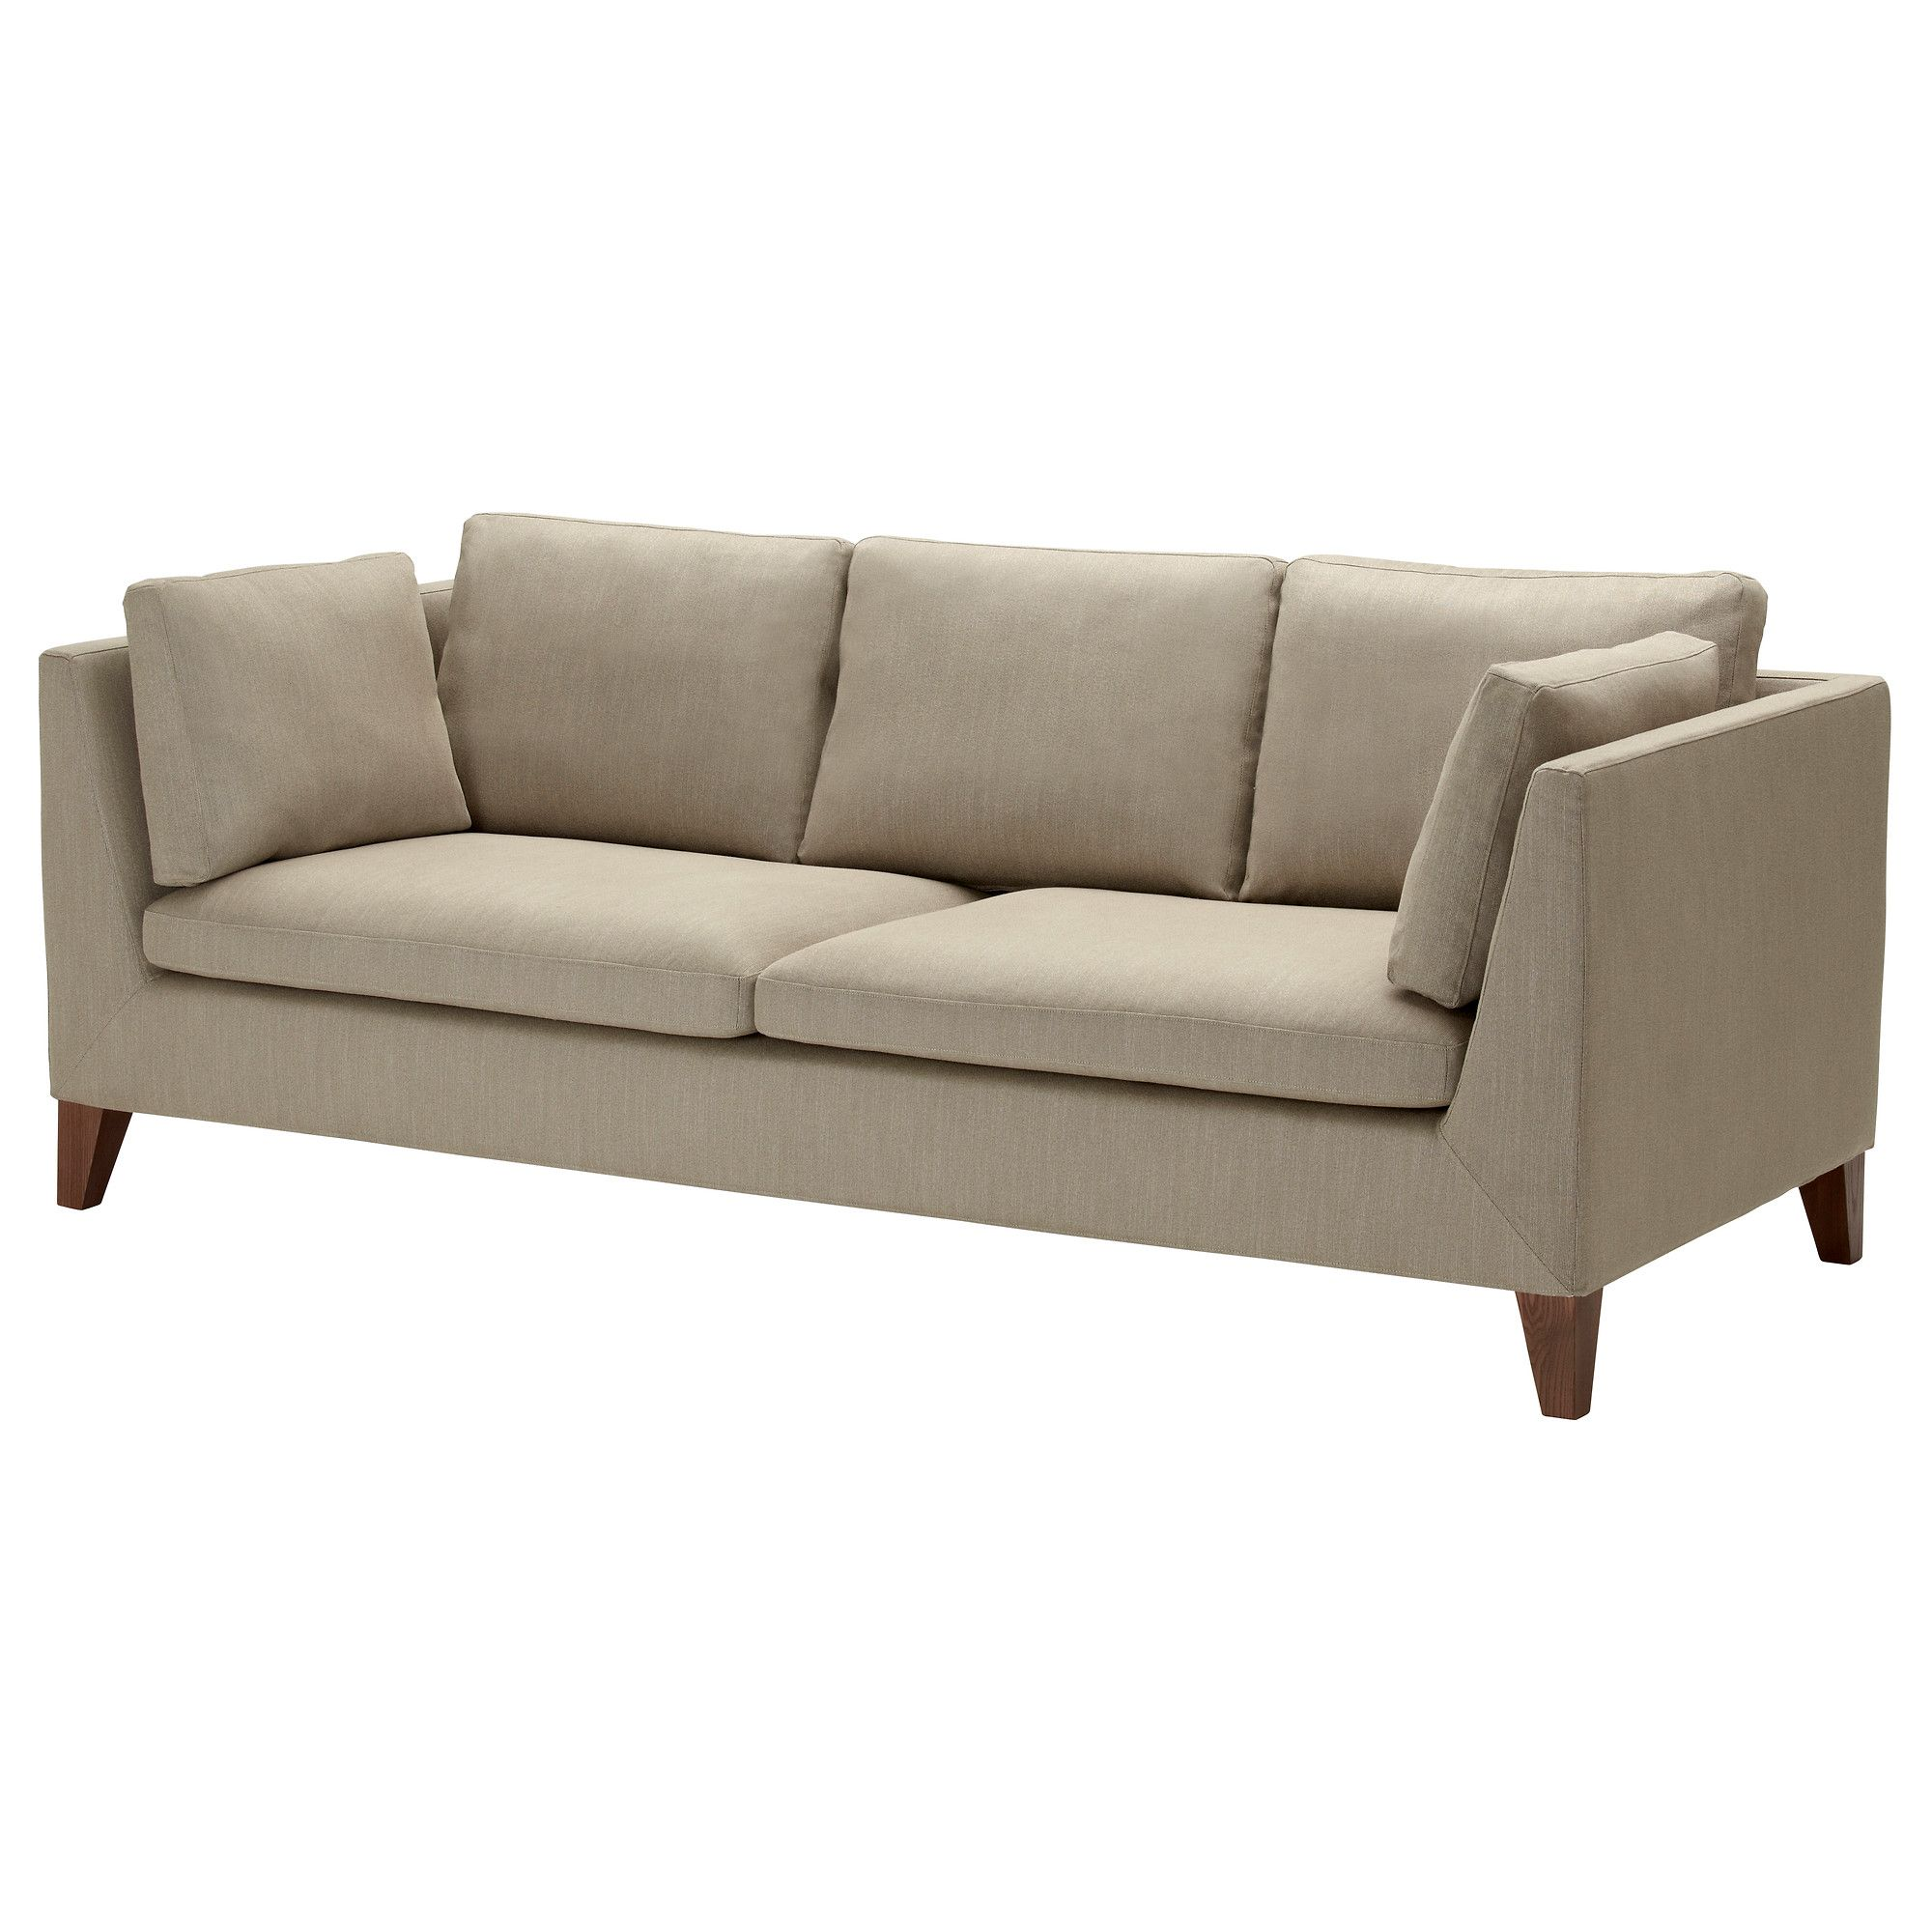 Like The Stockholm Best Too: STOCKHOLM Sofa   Gammelbo Light Brown   IKEA